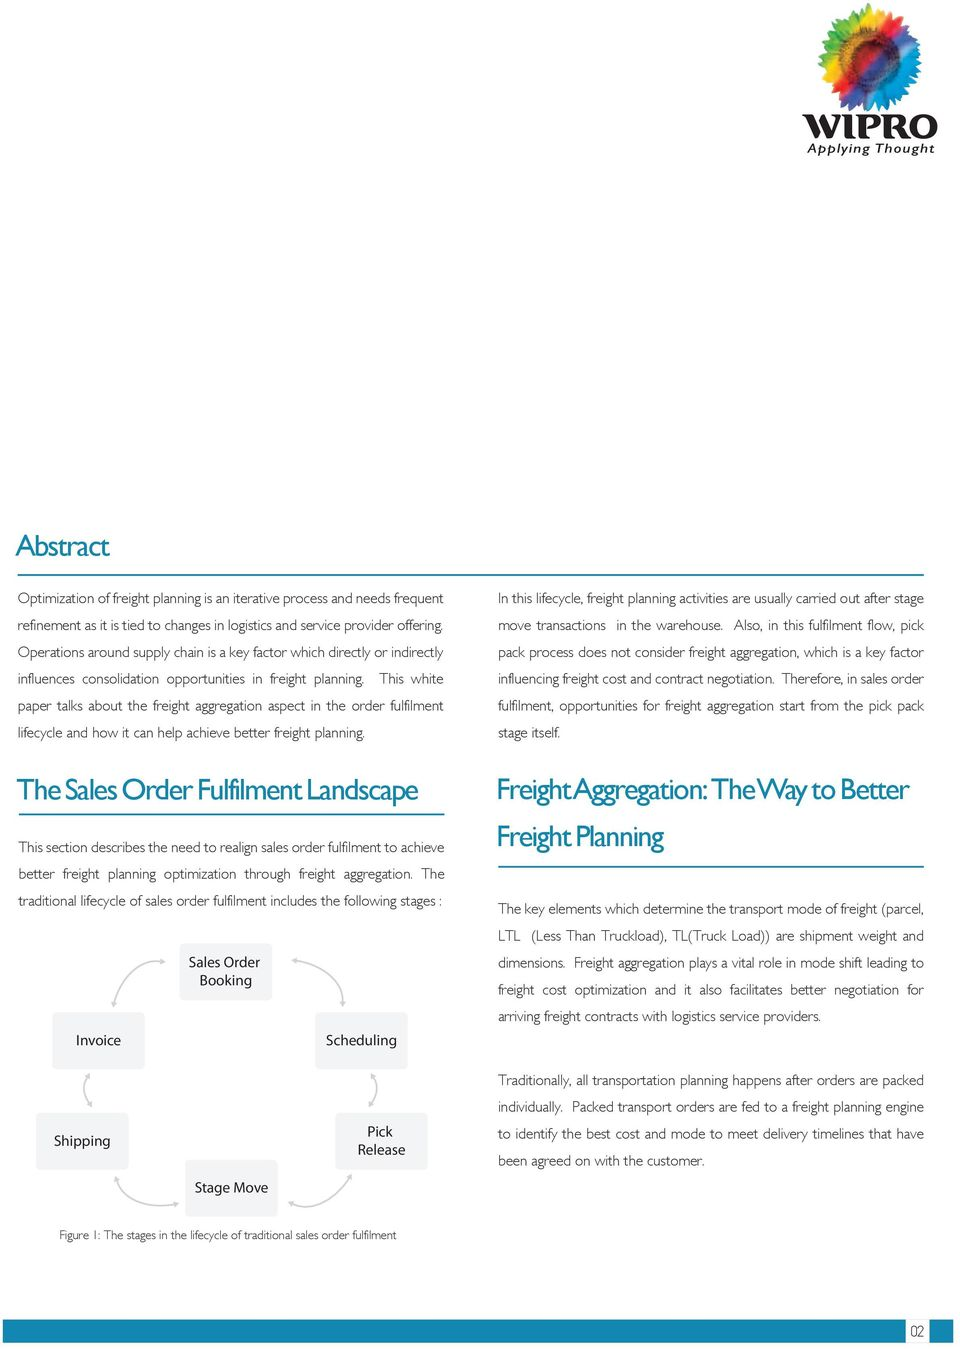 This white paper talks about the freight aggregation aspect in the order fulfilment lifecycle and how it can help achieve better freight planning.